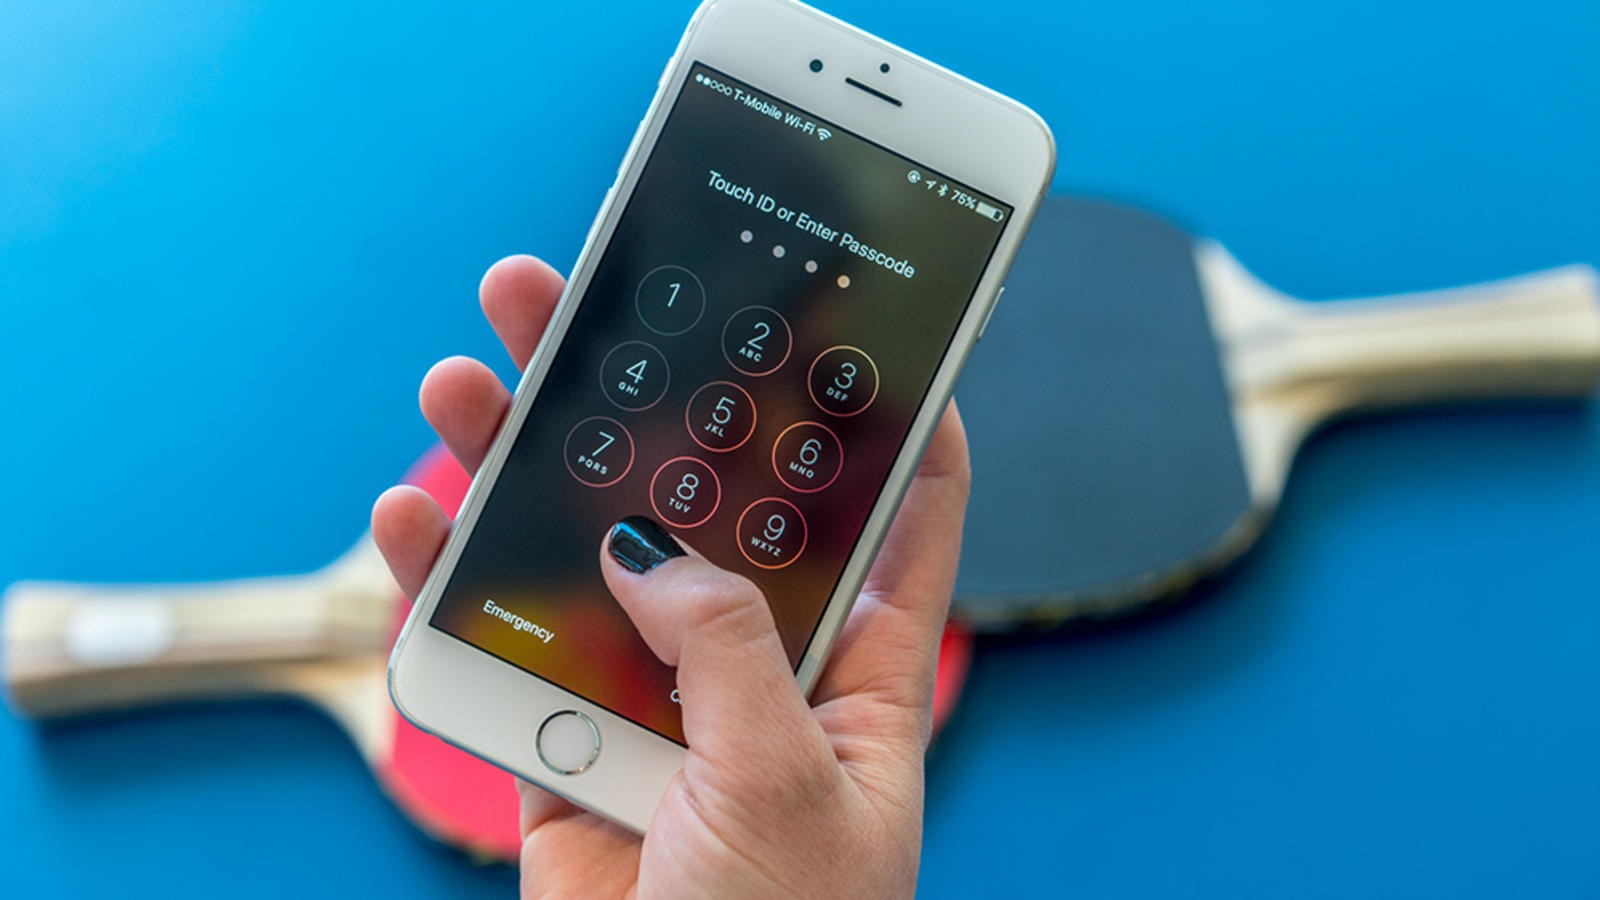 FBI Confirms Their Hack Method For iPhone Not Feasible With Higher Versions